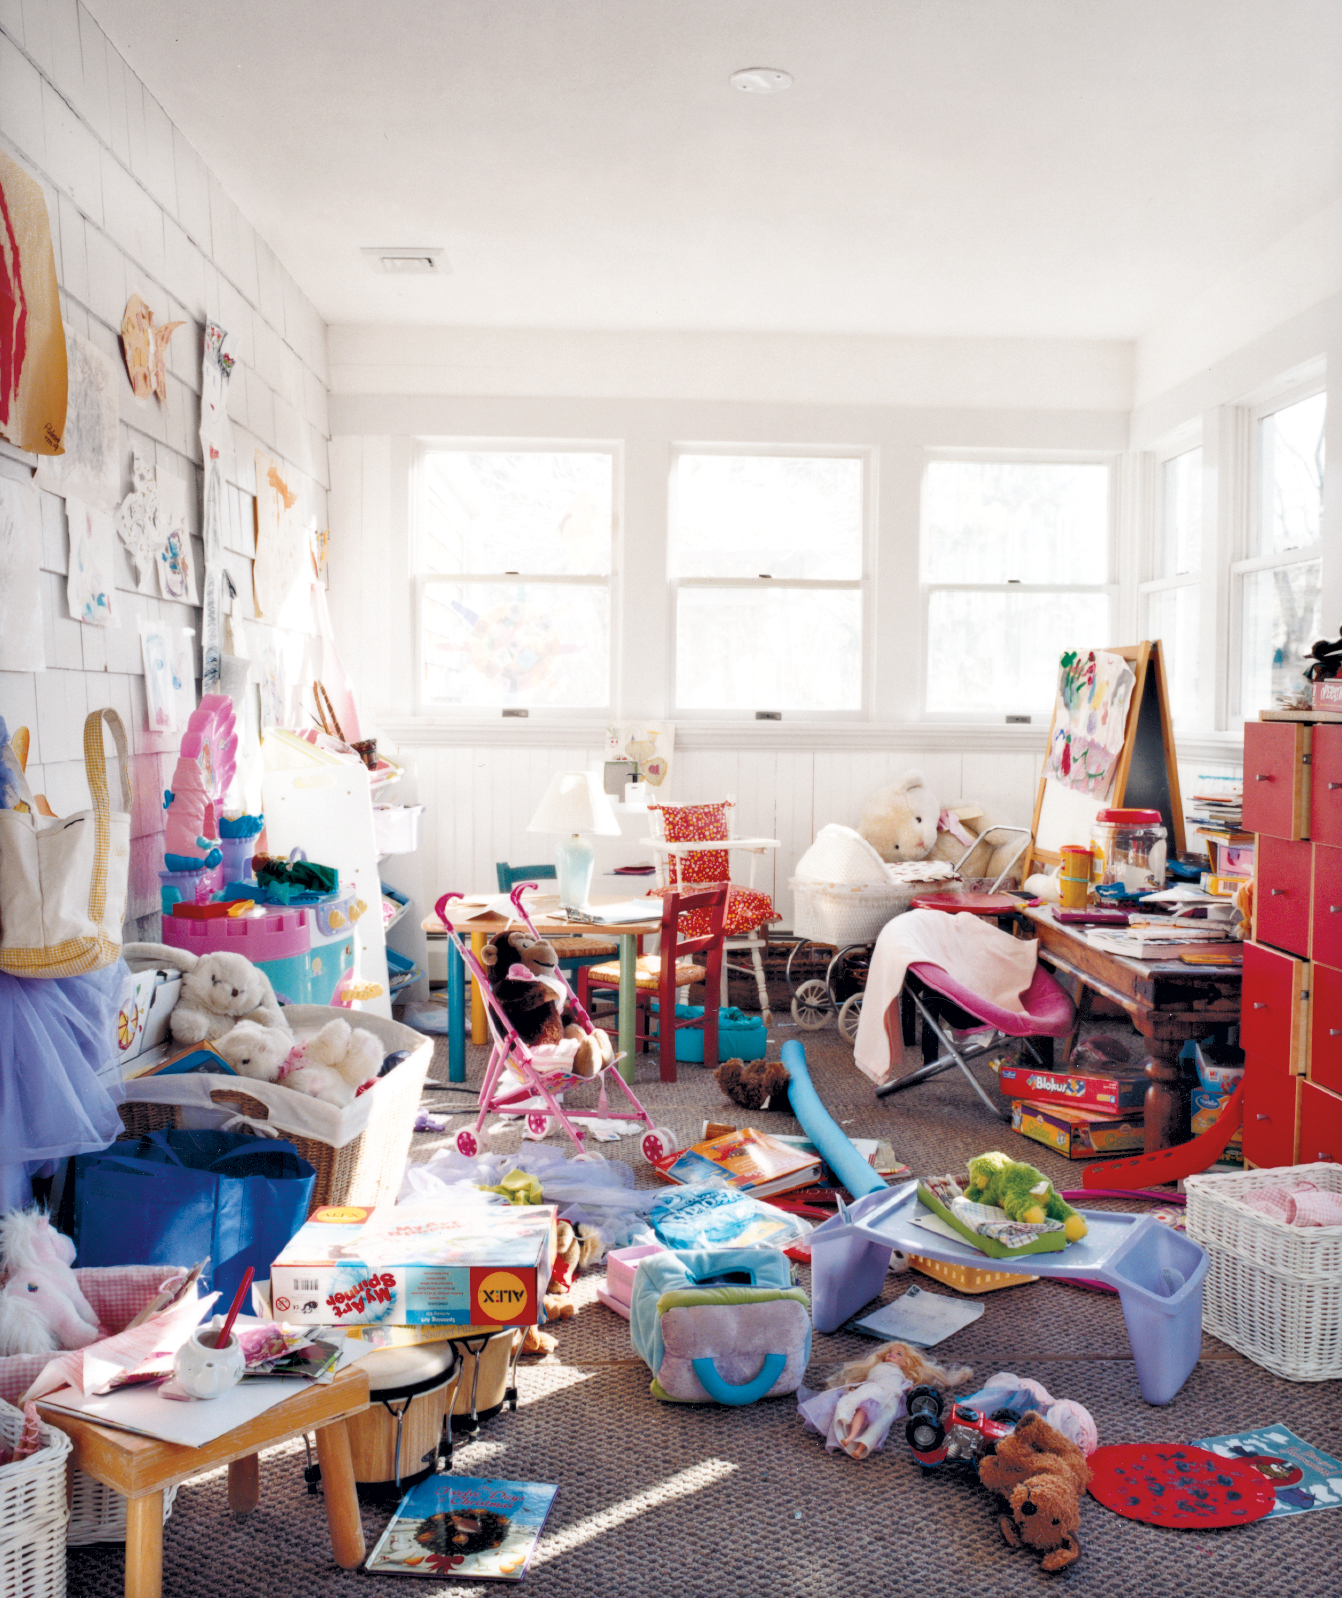 The Boothe's messy playroom